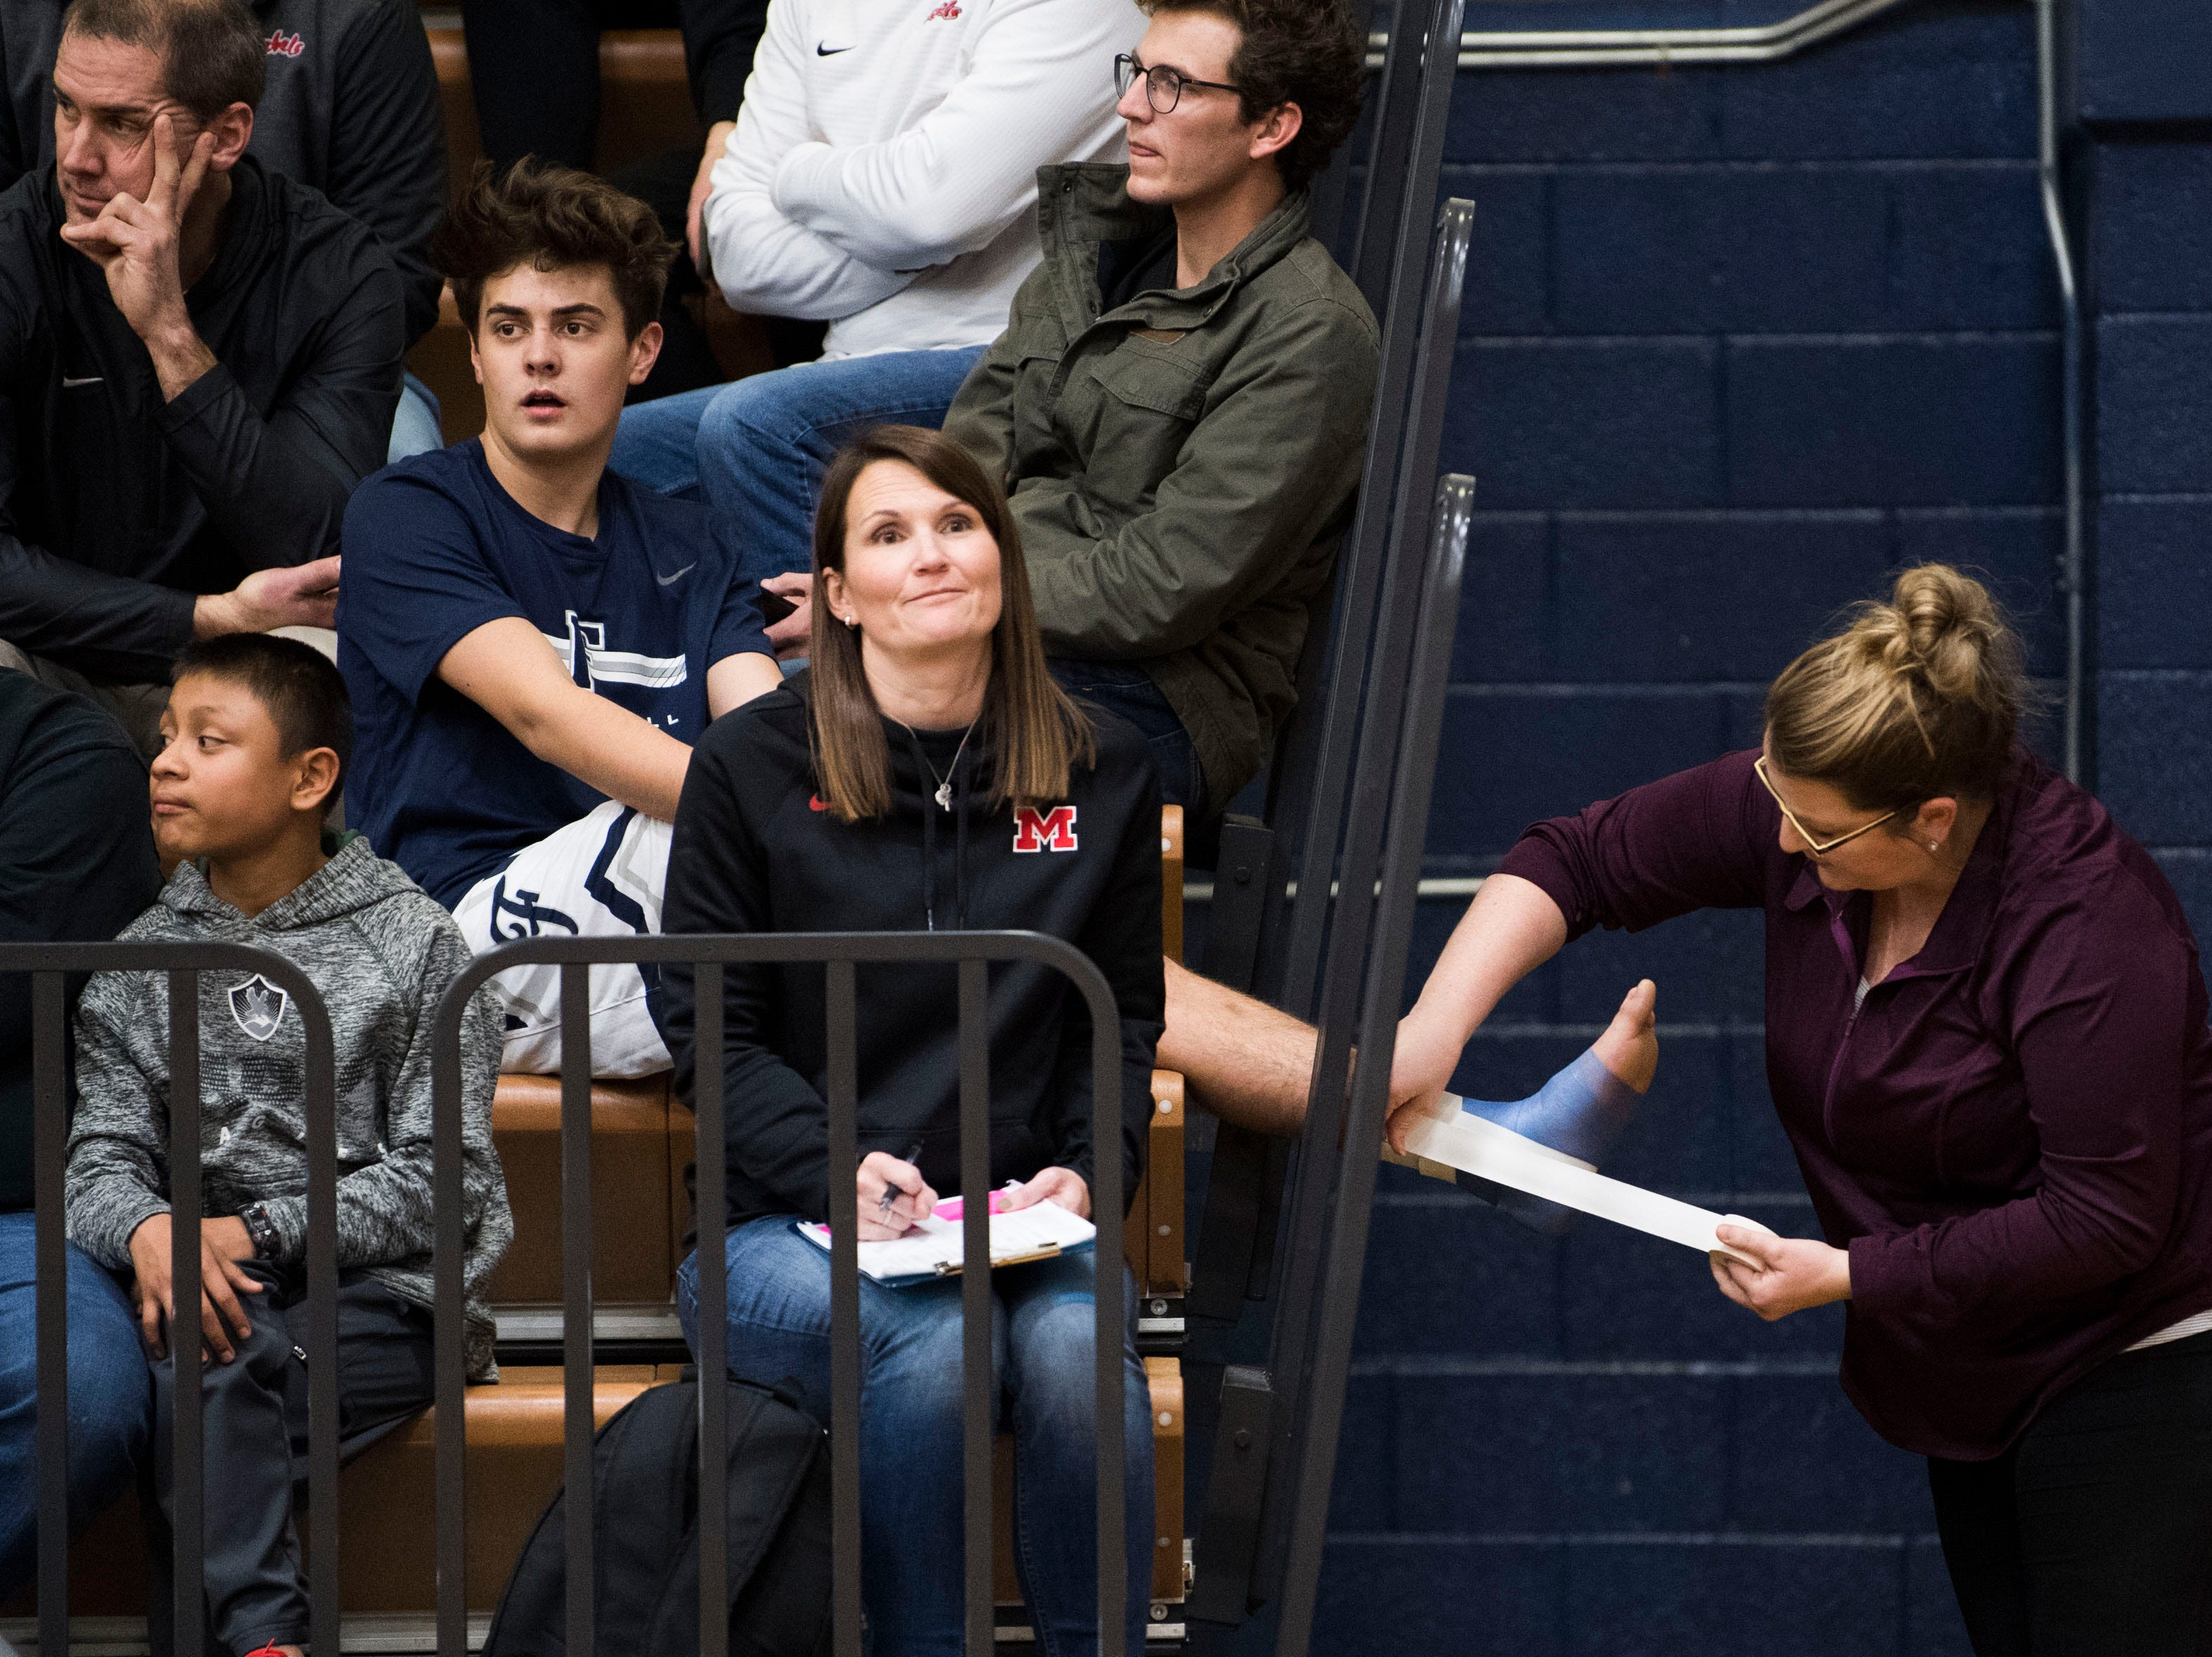 A Farragut boys player has his foot wrapped in the stands during a high school basketball game between Maryville and Farragut at Farragut, Friday, Jan. 11, 2019.